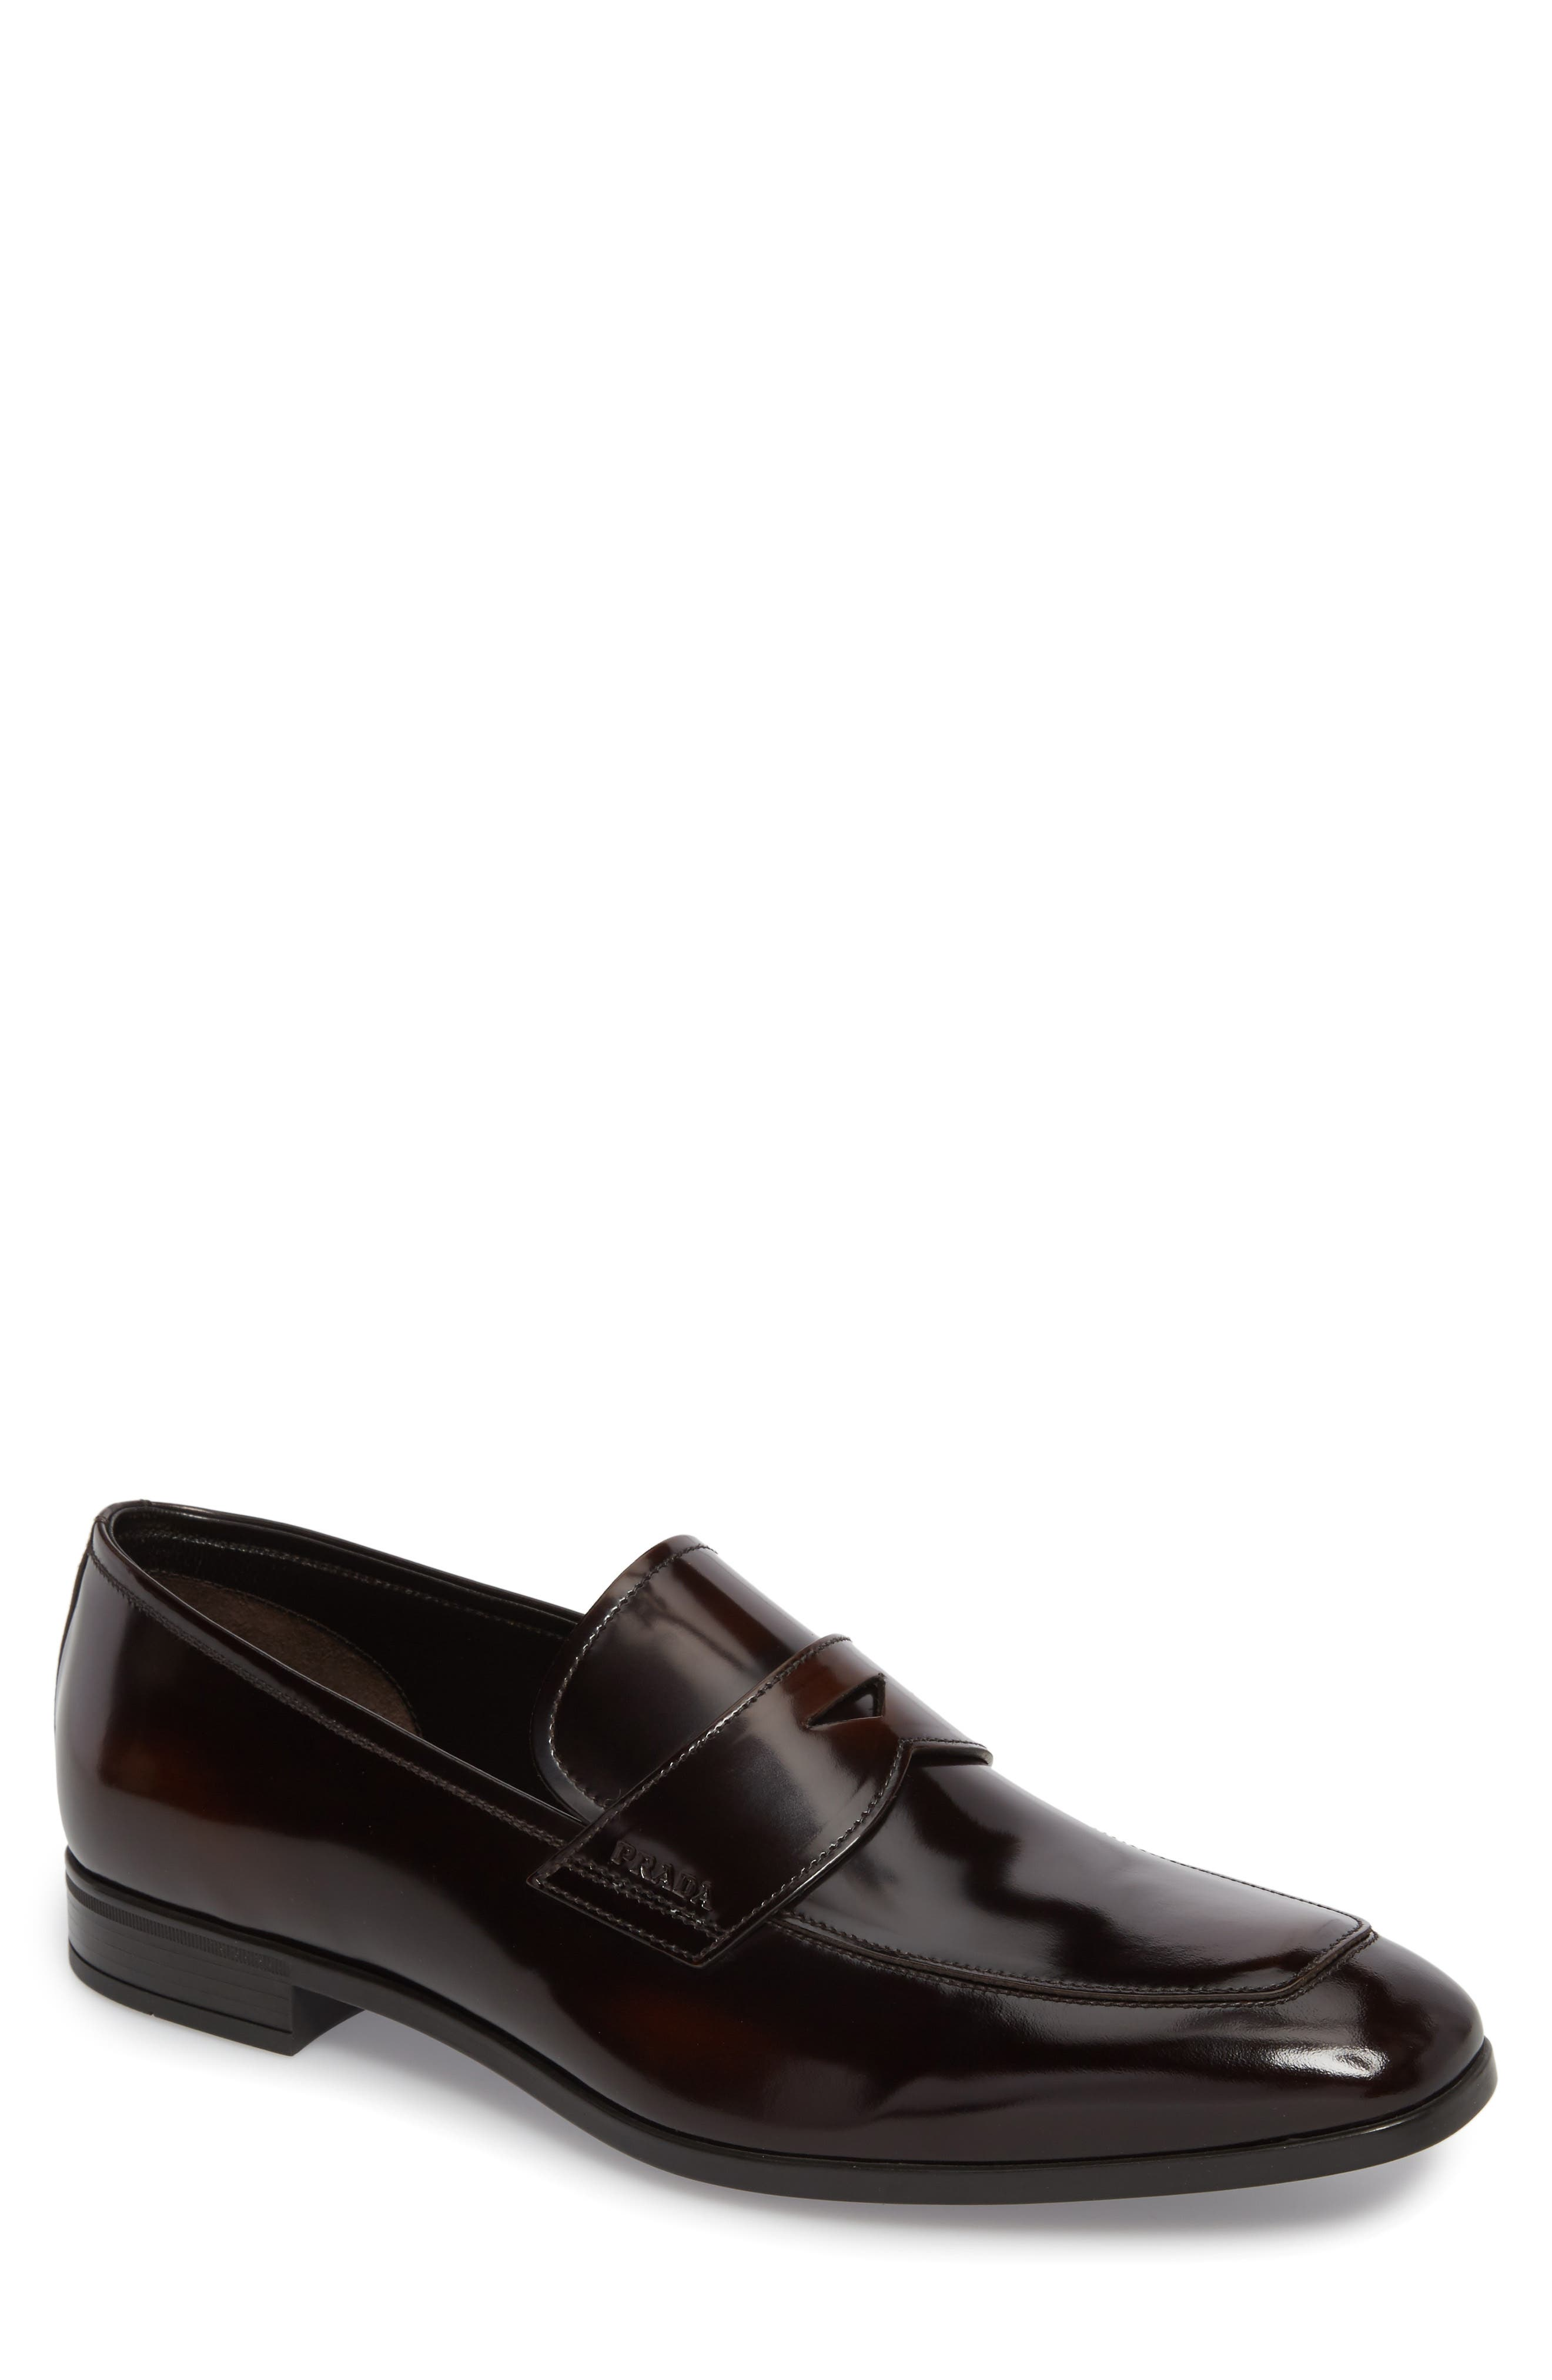 Main Image - Prada Penny Loafer (Men)